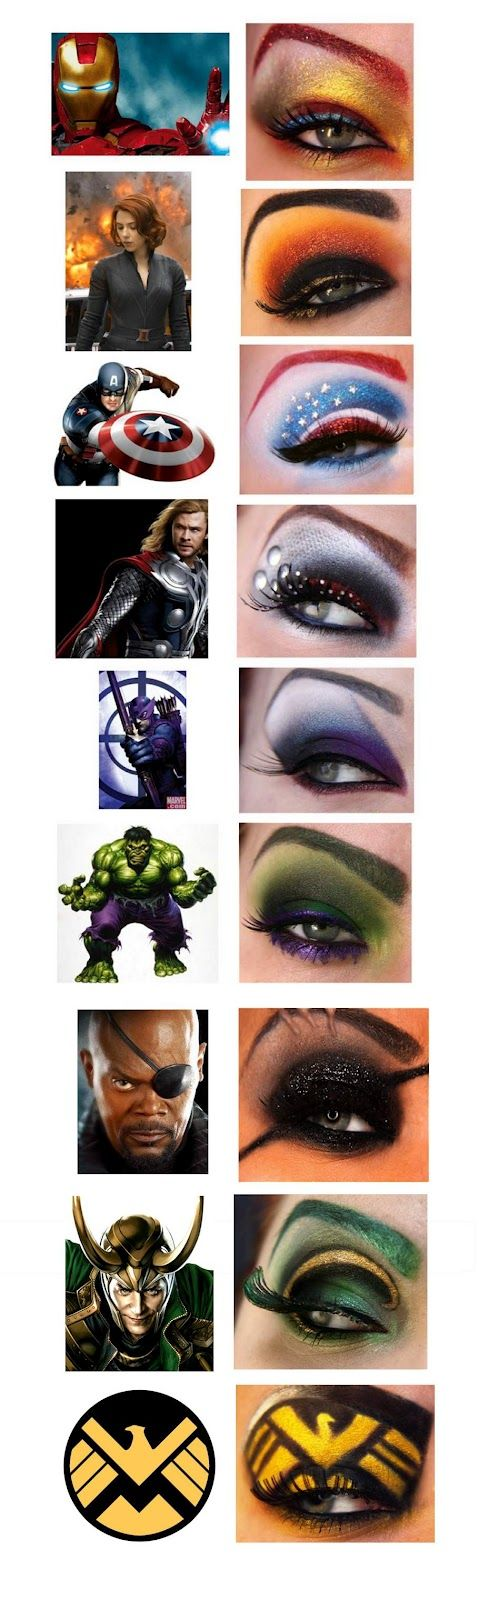 Geektastic Avengers Eye Makeup Designs [Pic]